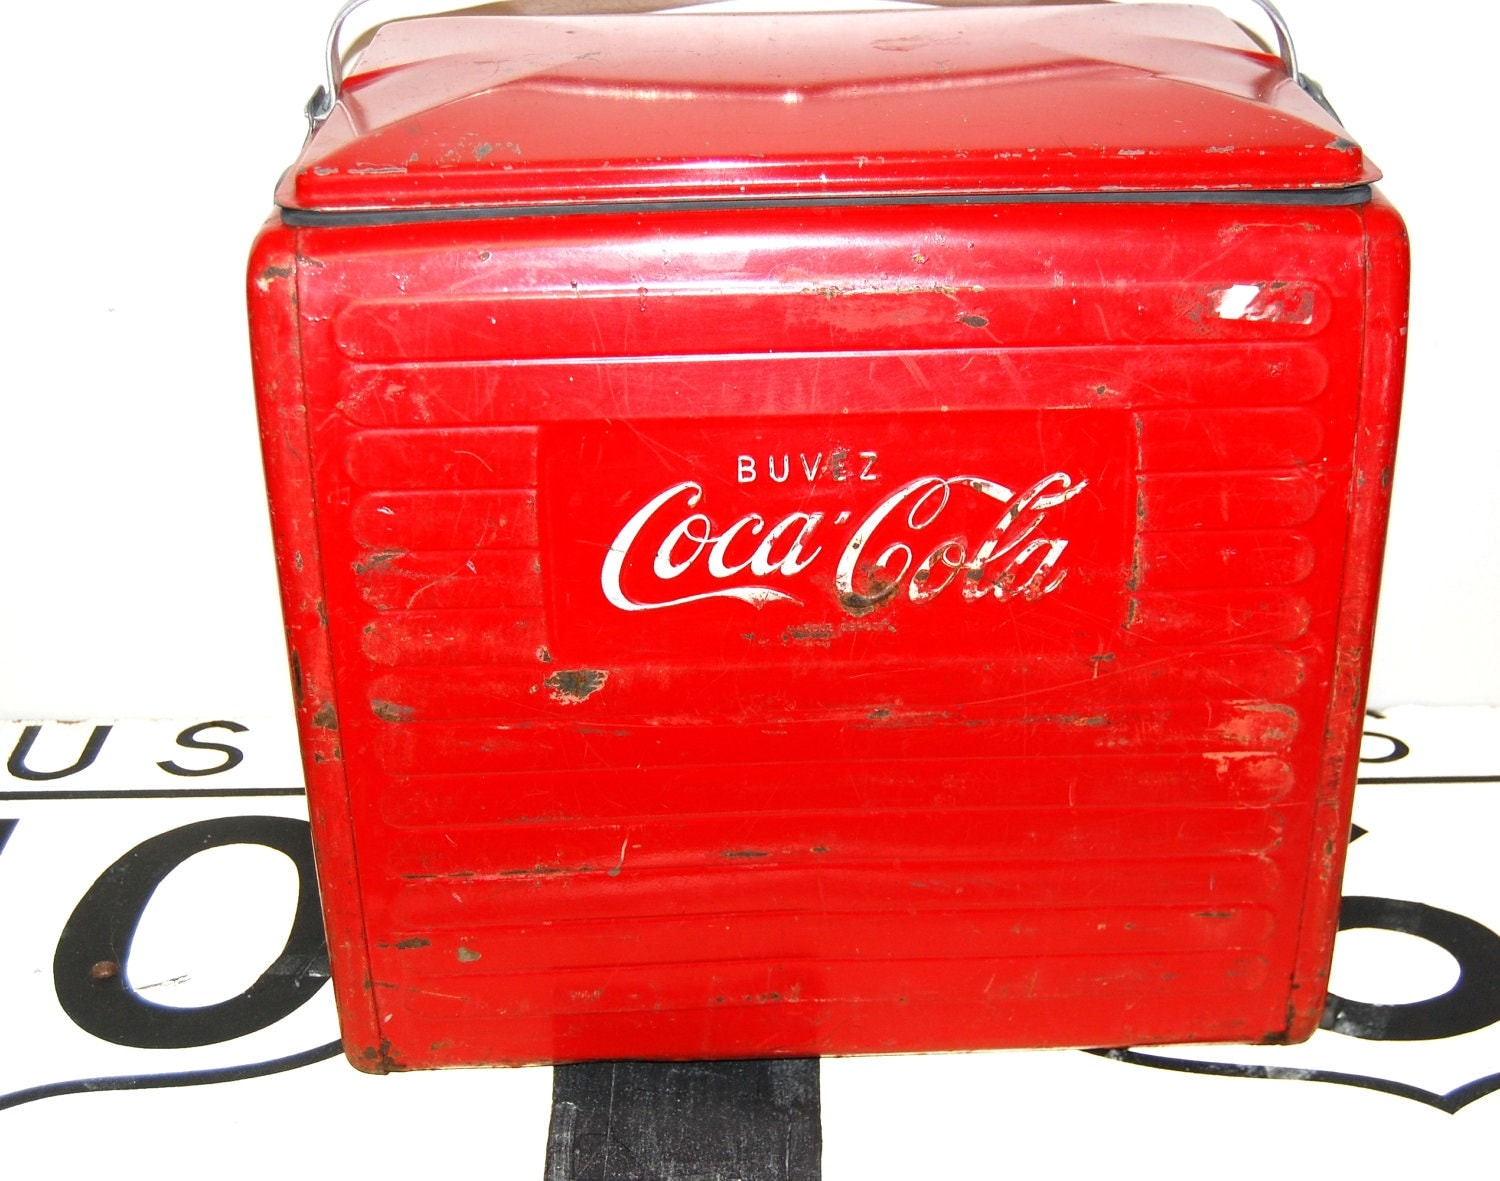 vintage coca cola cooler red cooler canada ice chest  Old Coca Cola Coolers